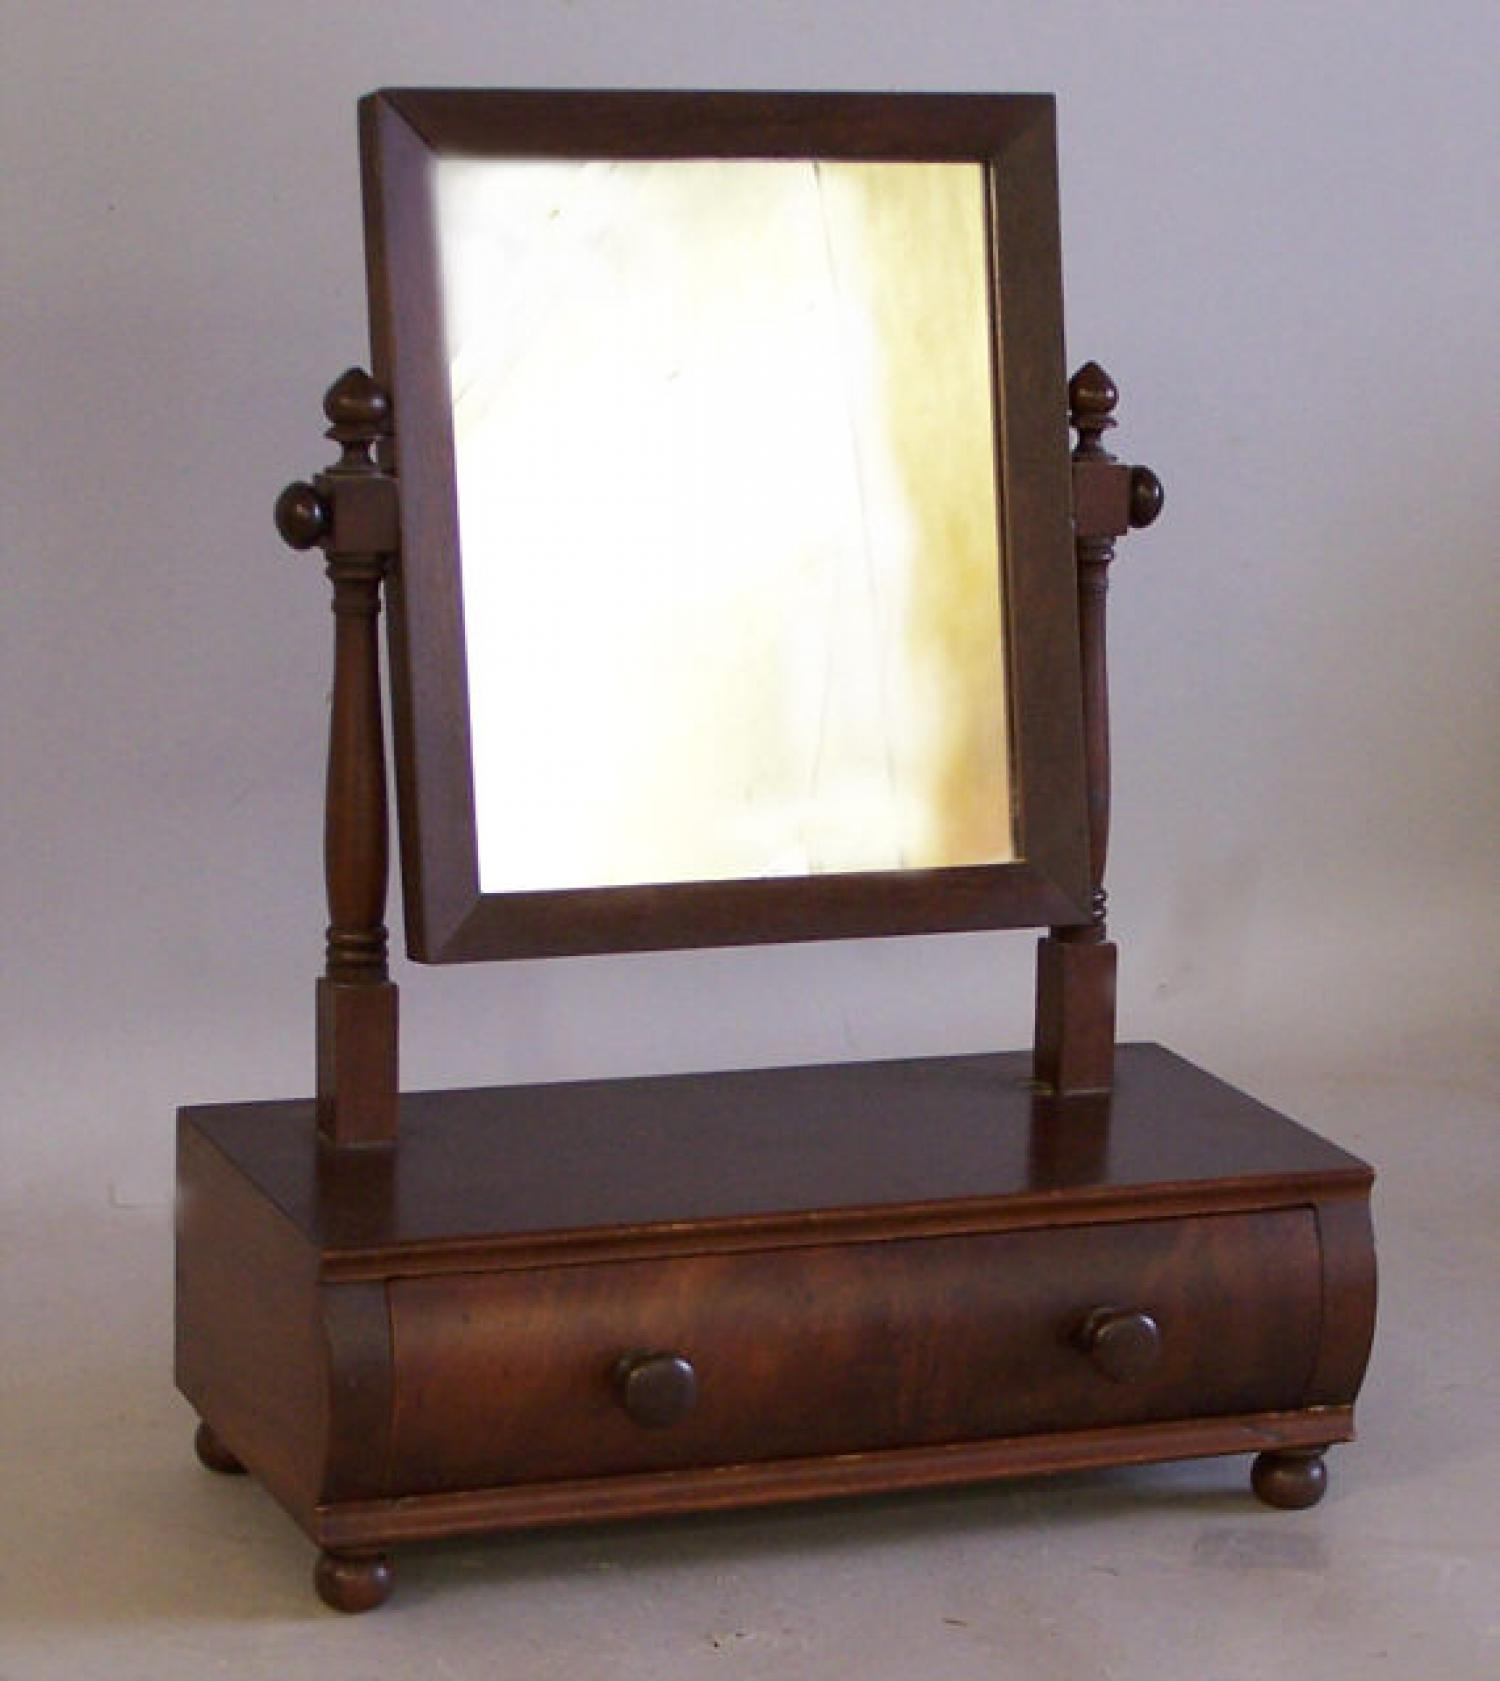 Antique gentlemans shaving mirror c1830